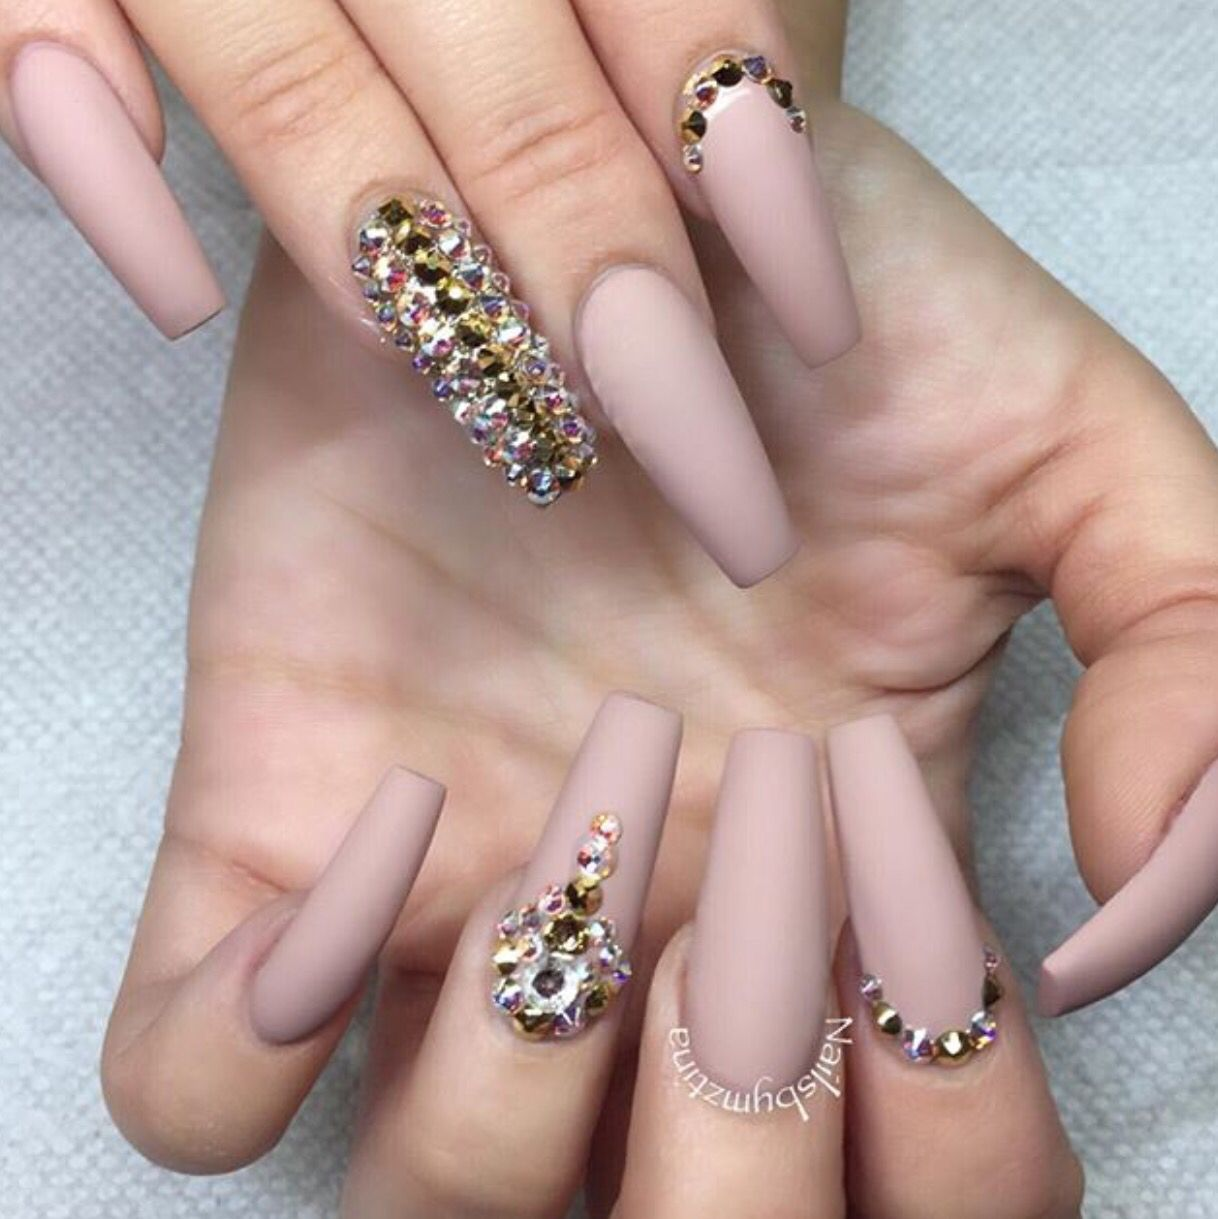 Pin de My Info en nails | Pinterest | Diseños de uñas, Uña decoradas ...